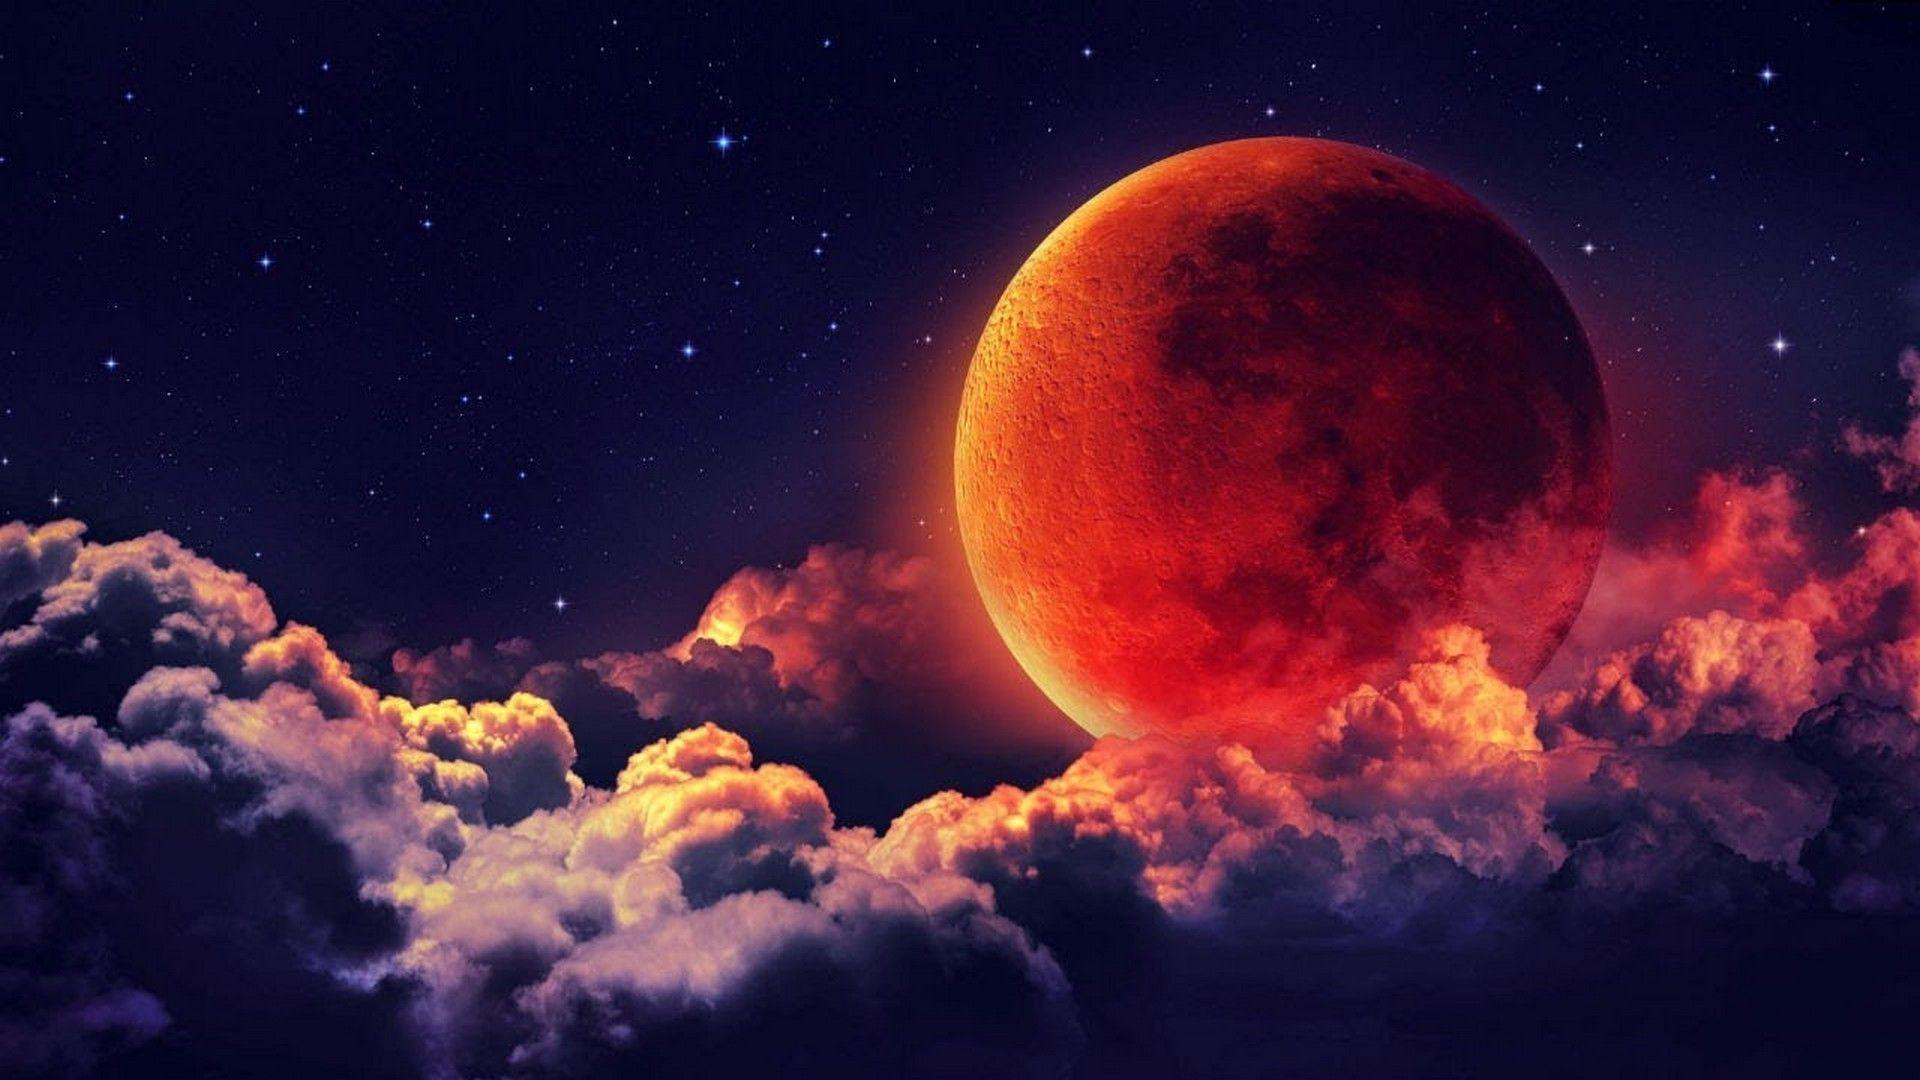 Red Moon Wallpaper: Wallpapers Moon